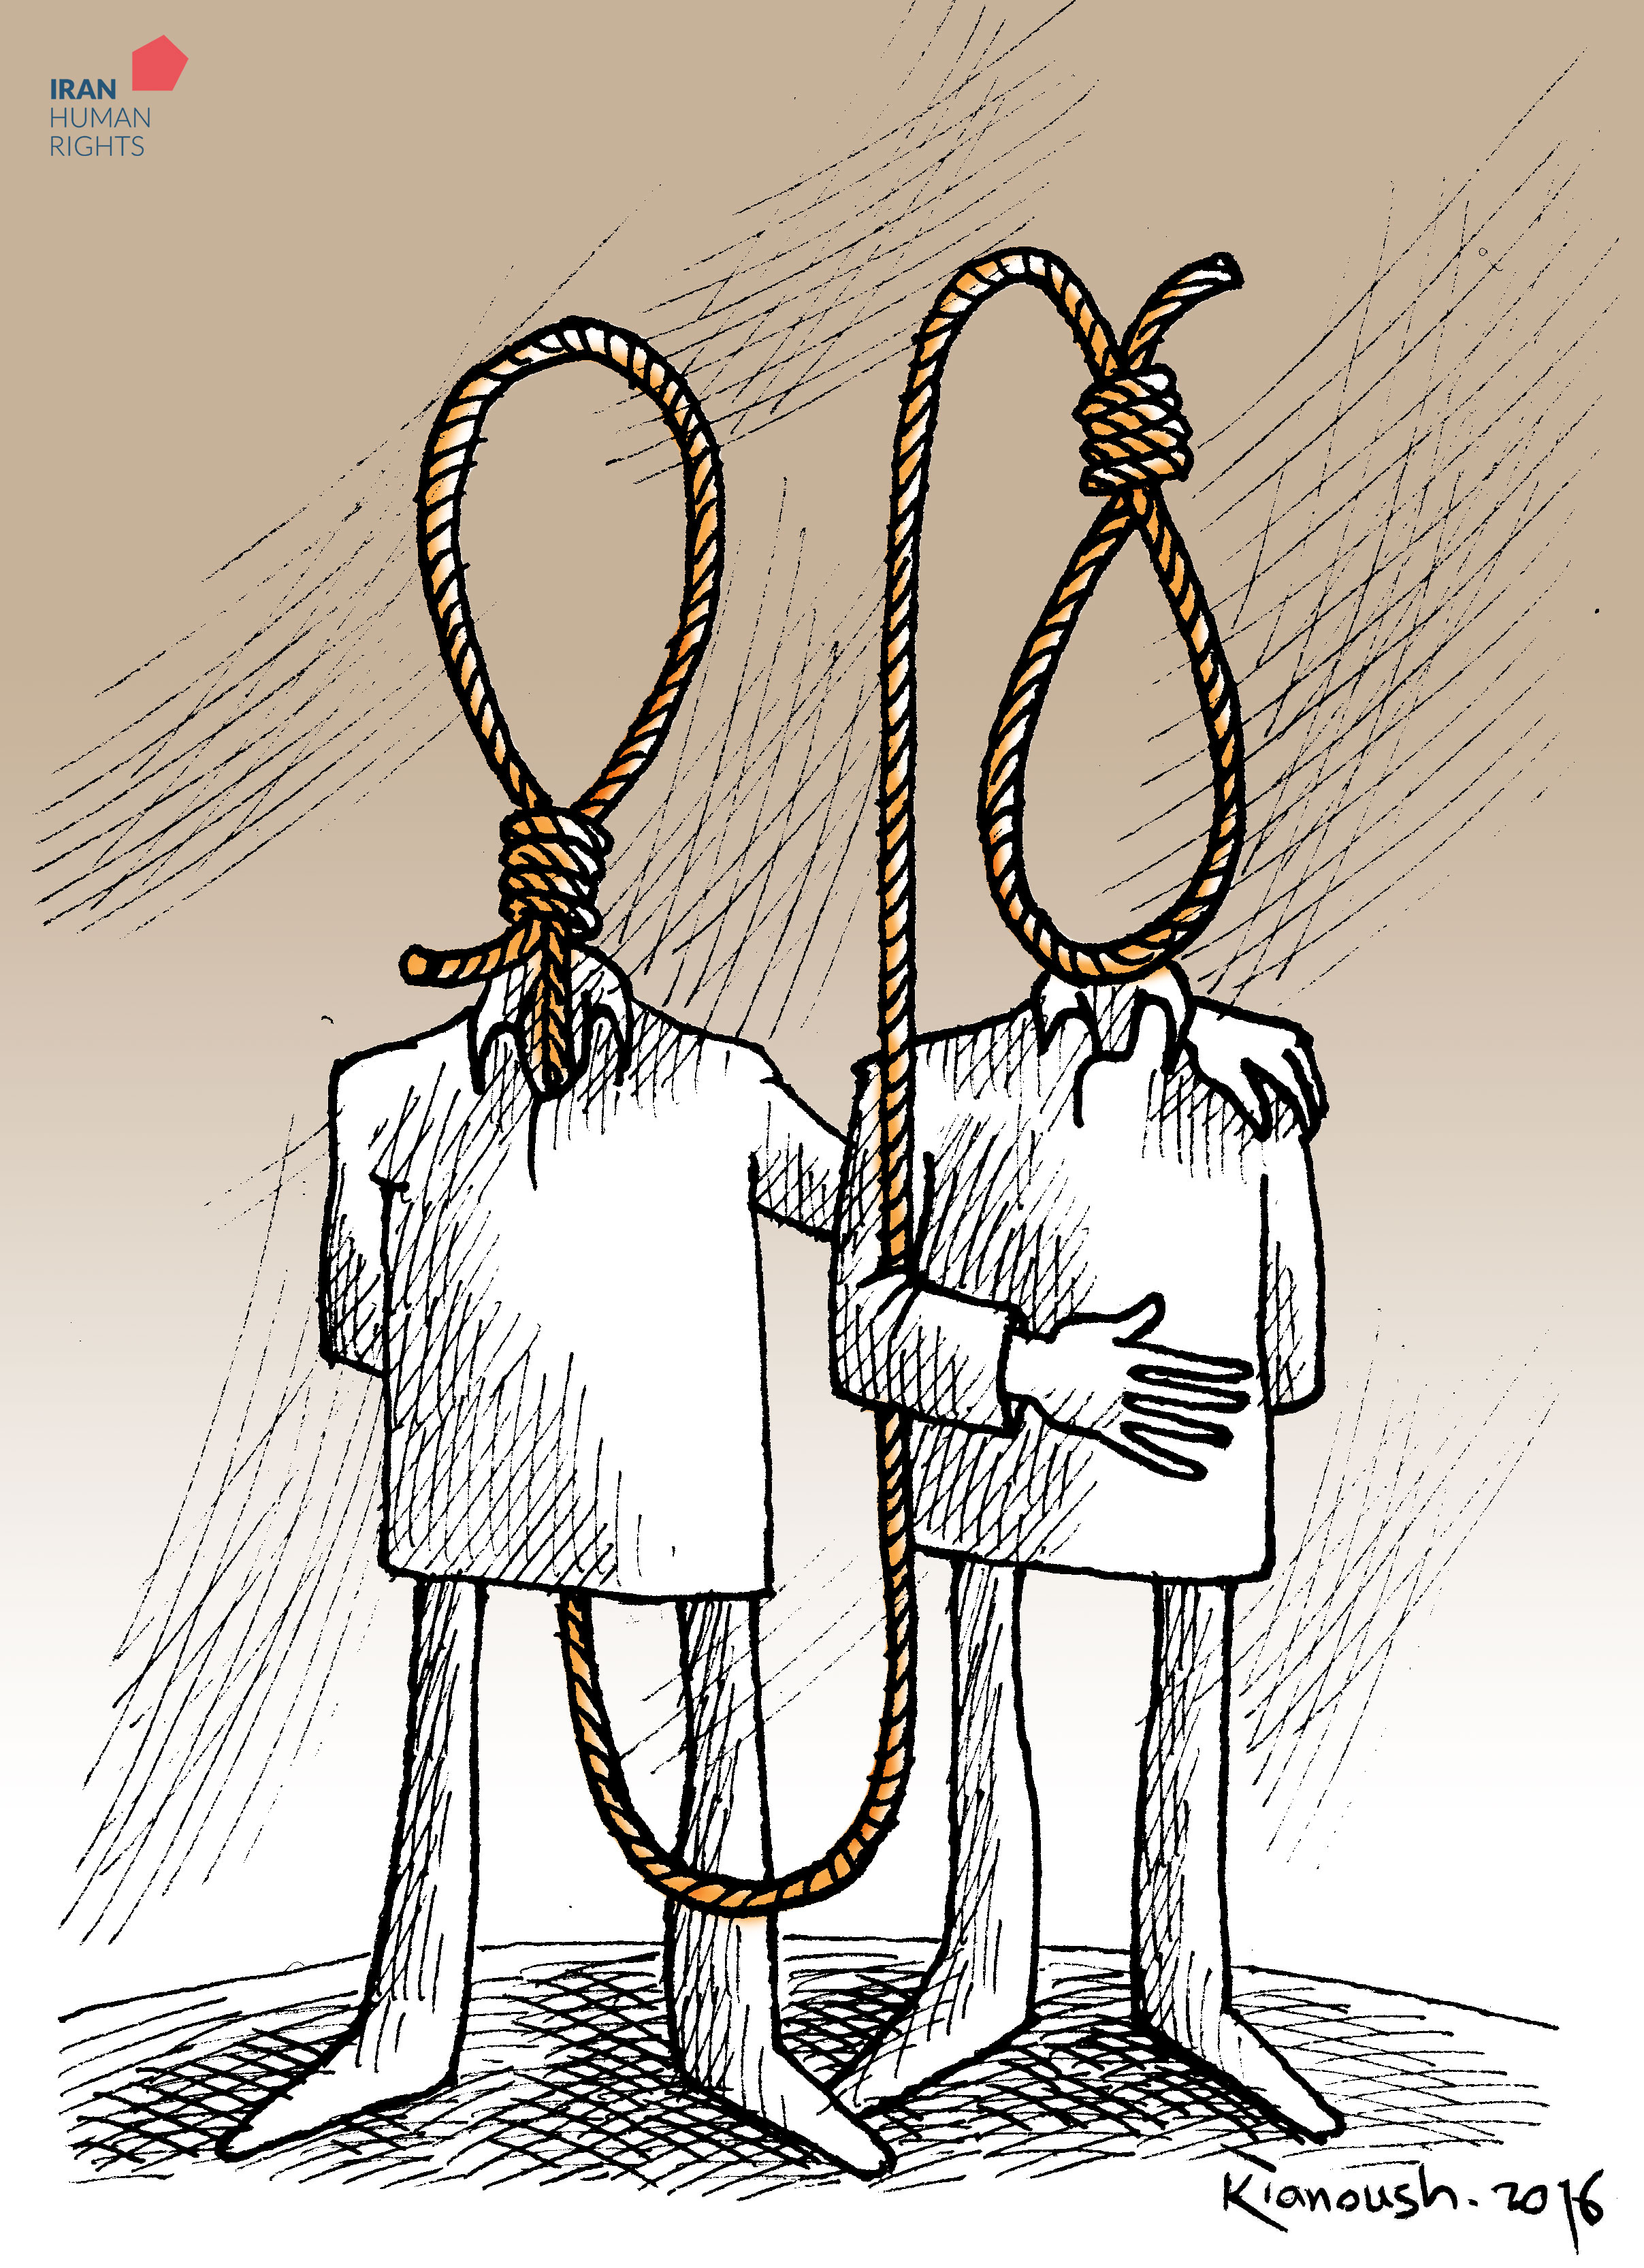 Extremist Islam's answer to homosexuality: DEATH